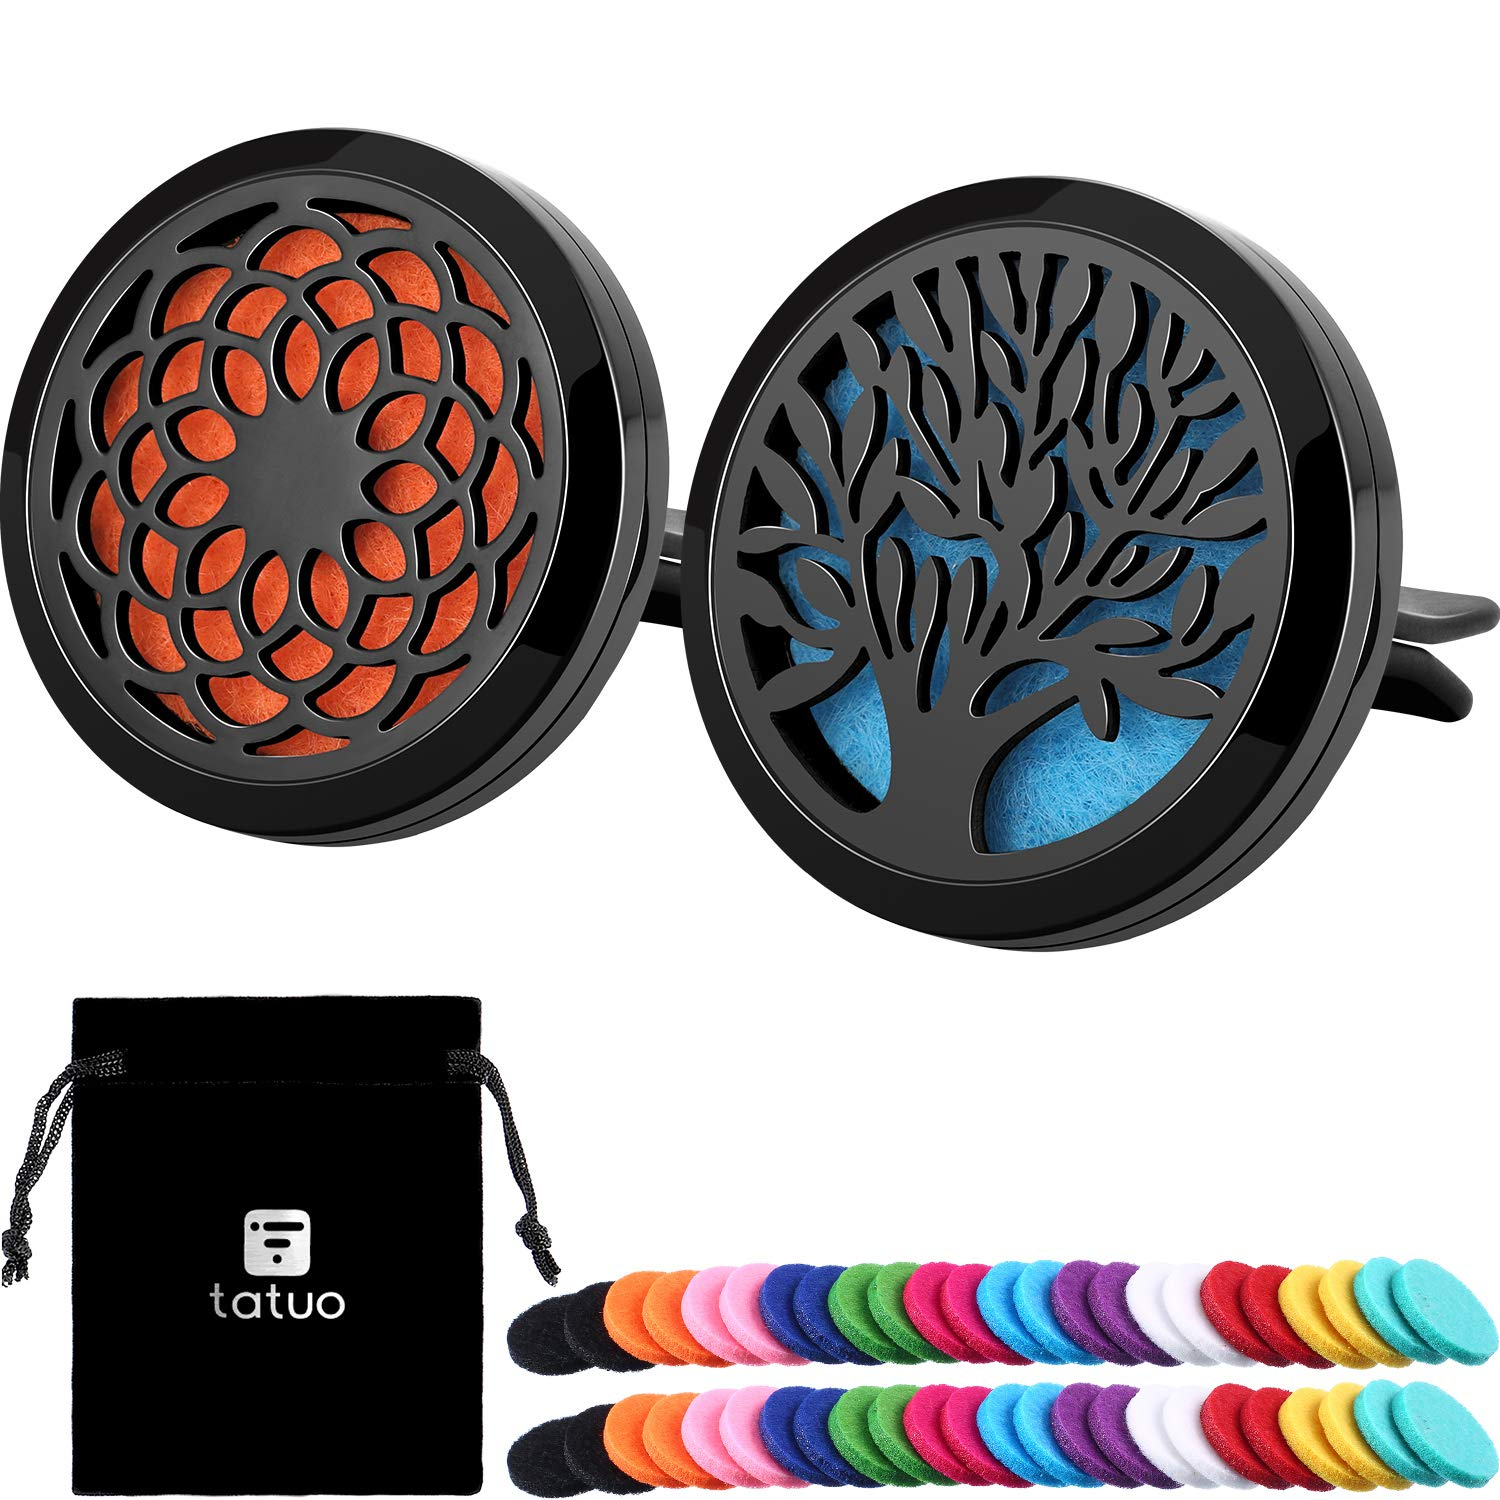 Tatuo 2 Pieces 316L Stainless Steel Car Aromatherapy Essential Oil Diffuser Air Freshener Vent Clip Locket with 48 Pieces Replacement Felt Pad (Sunflower, Tree Patterns-Black)